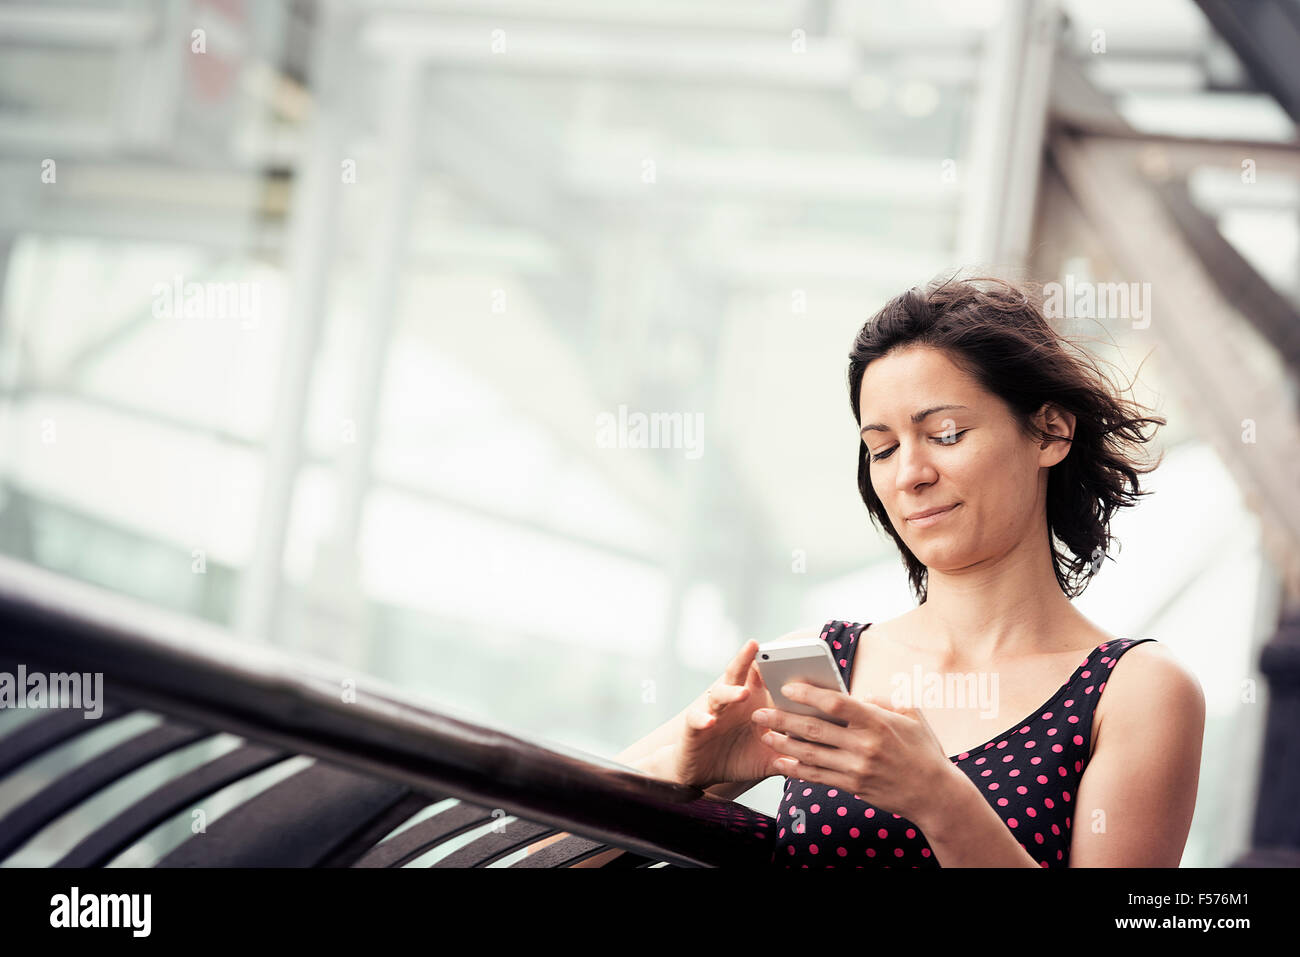 A woman standing outside a building checking her cell phone. - Stock Image